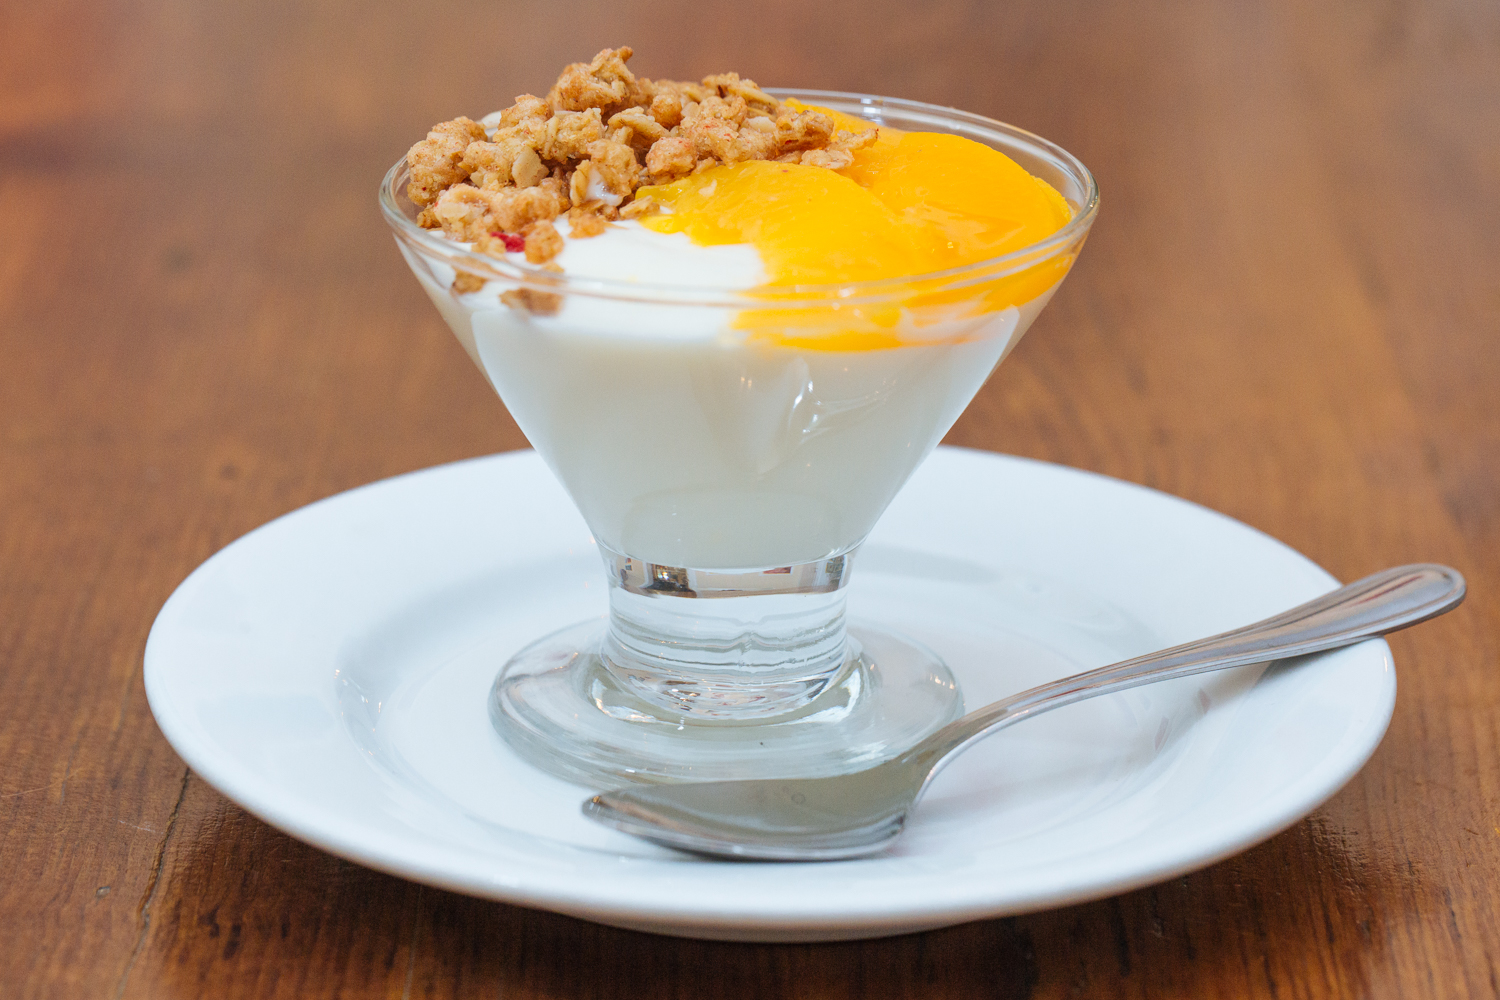 Yogurt and Peach Parfait